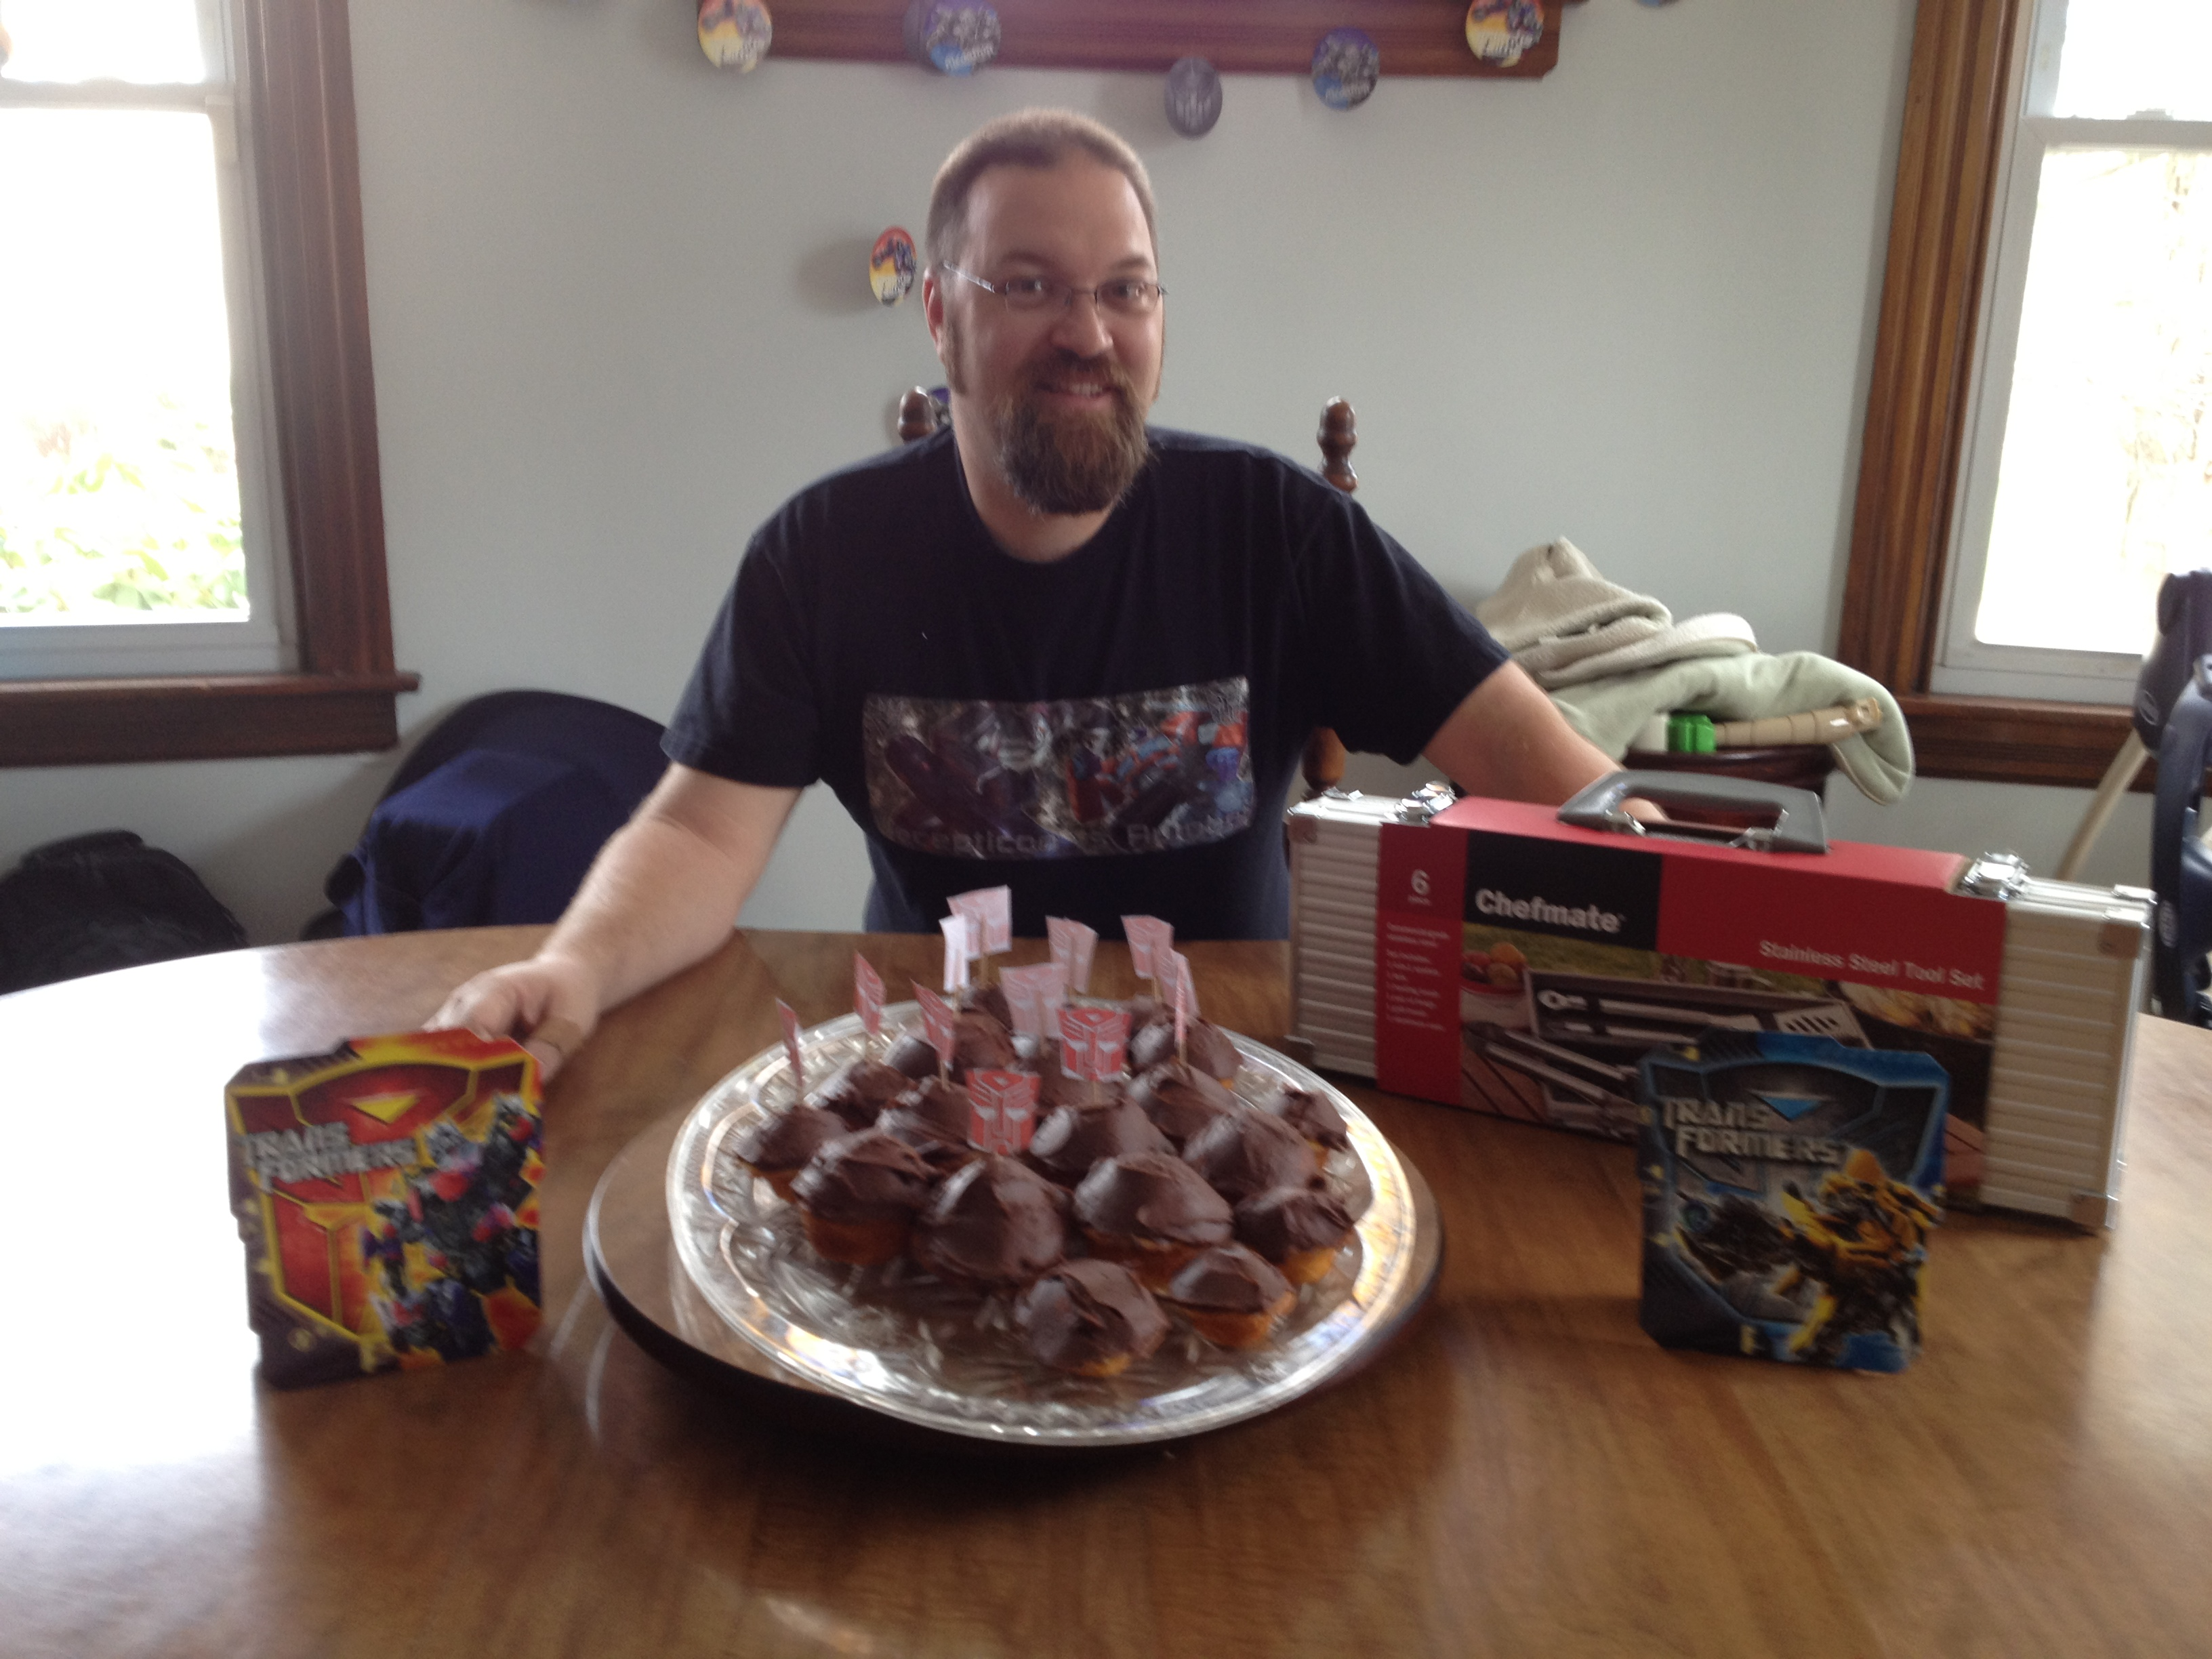 My Transformers Birthday Party. I'm 38